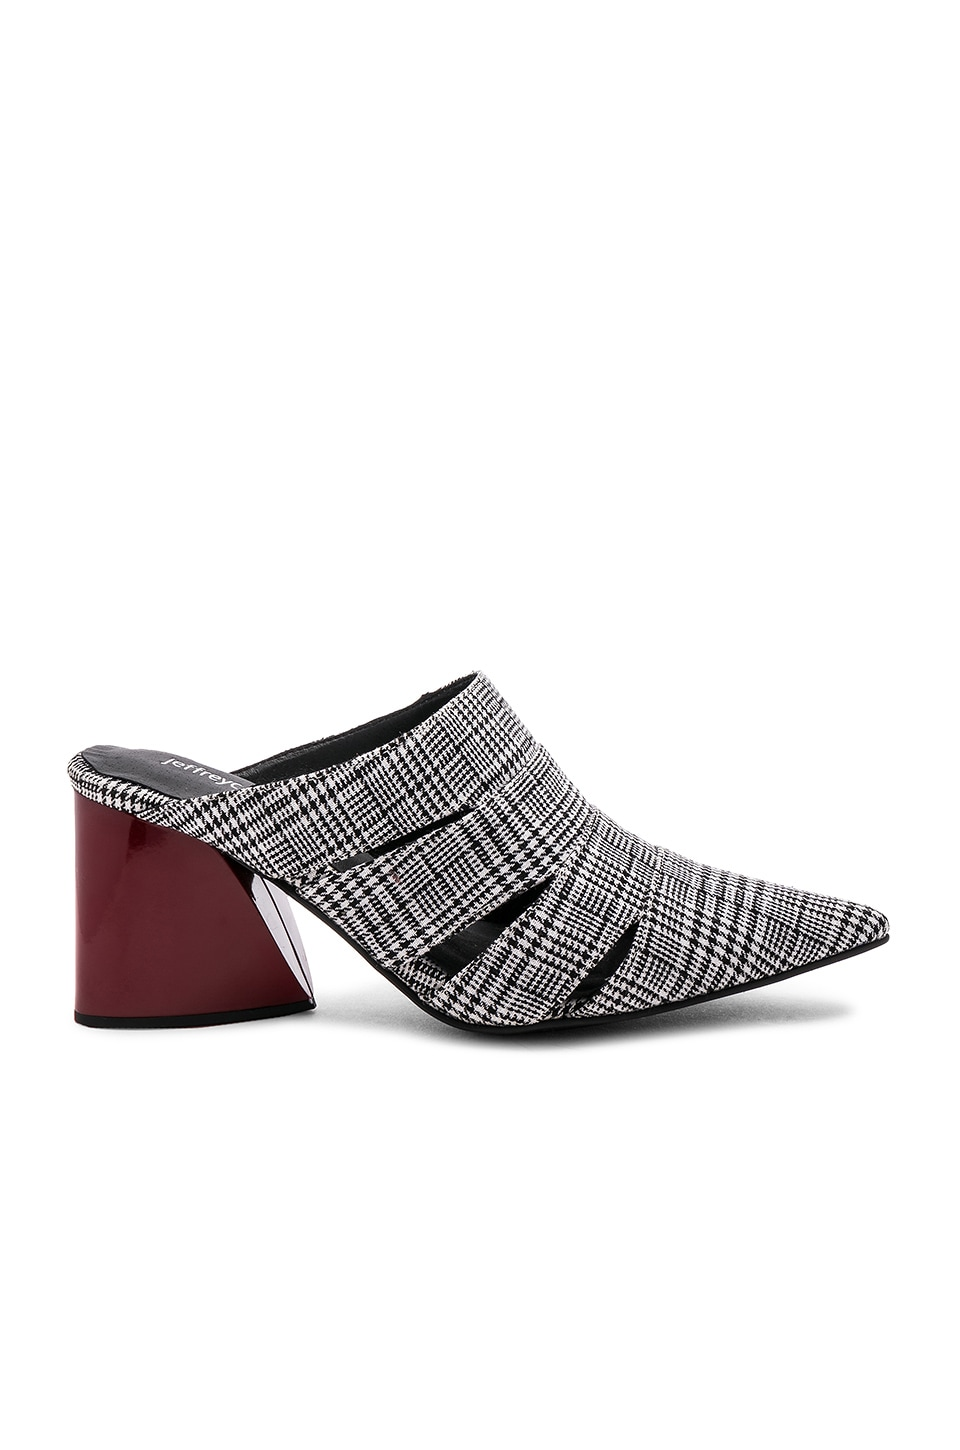 Jeffrey Campbell Creek Mule in Houndstooth